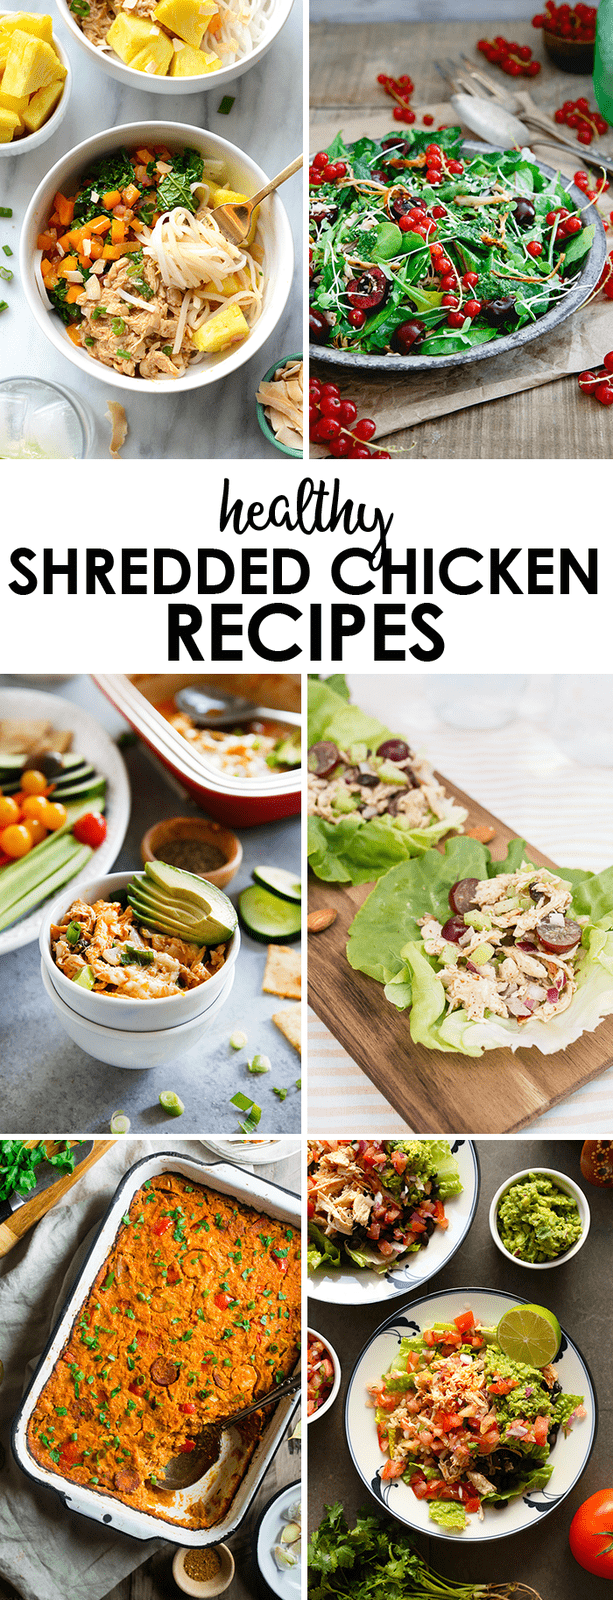 Collage of photos of healthy shredded chicken recipes.